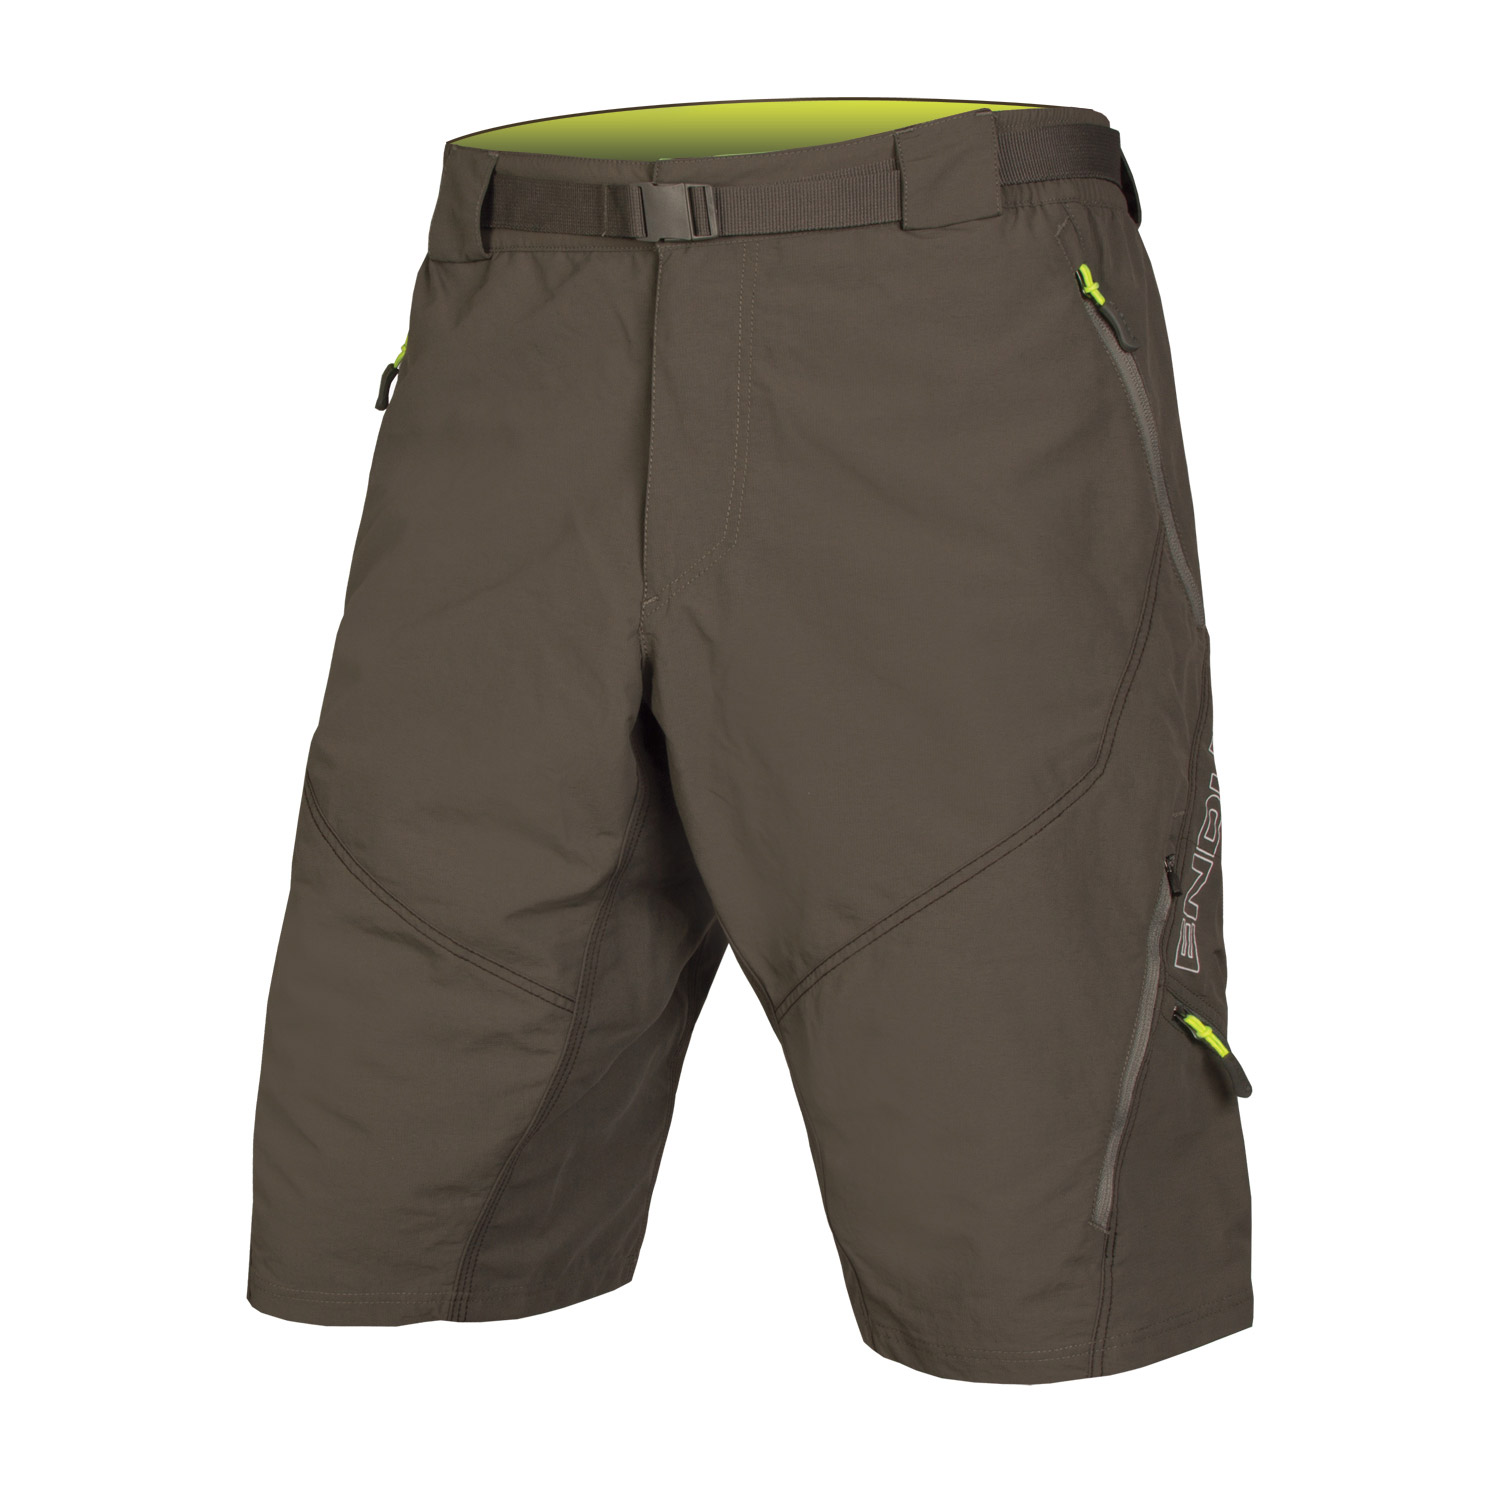 Hummvee Short II with liner Khaki